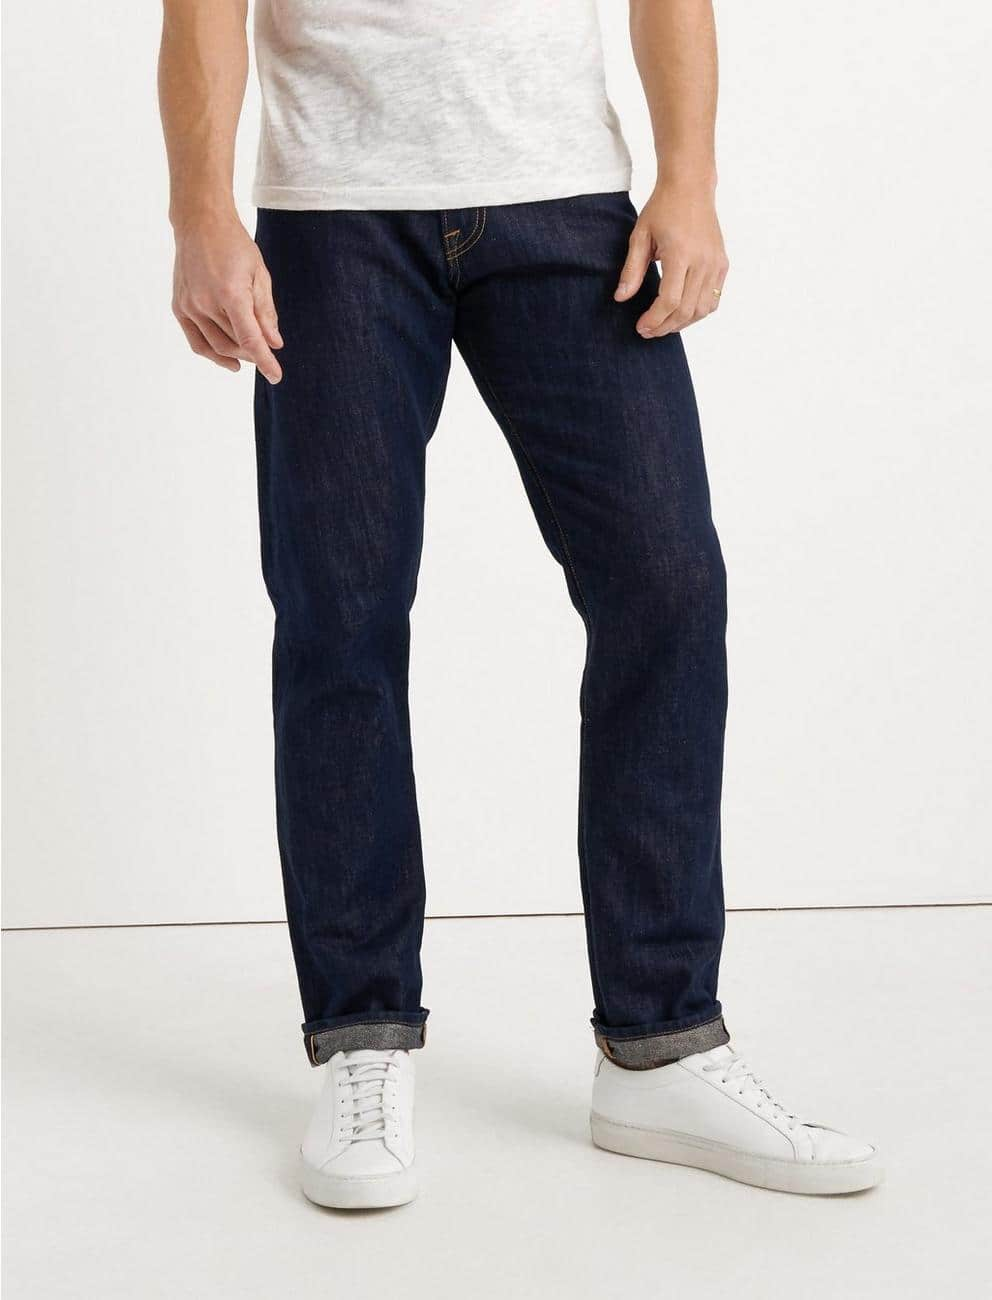 Lucky Brand Flash Sale: Select Men's & Women's Jeans $27 Each + Free S/H on $50+